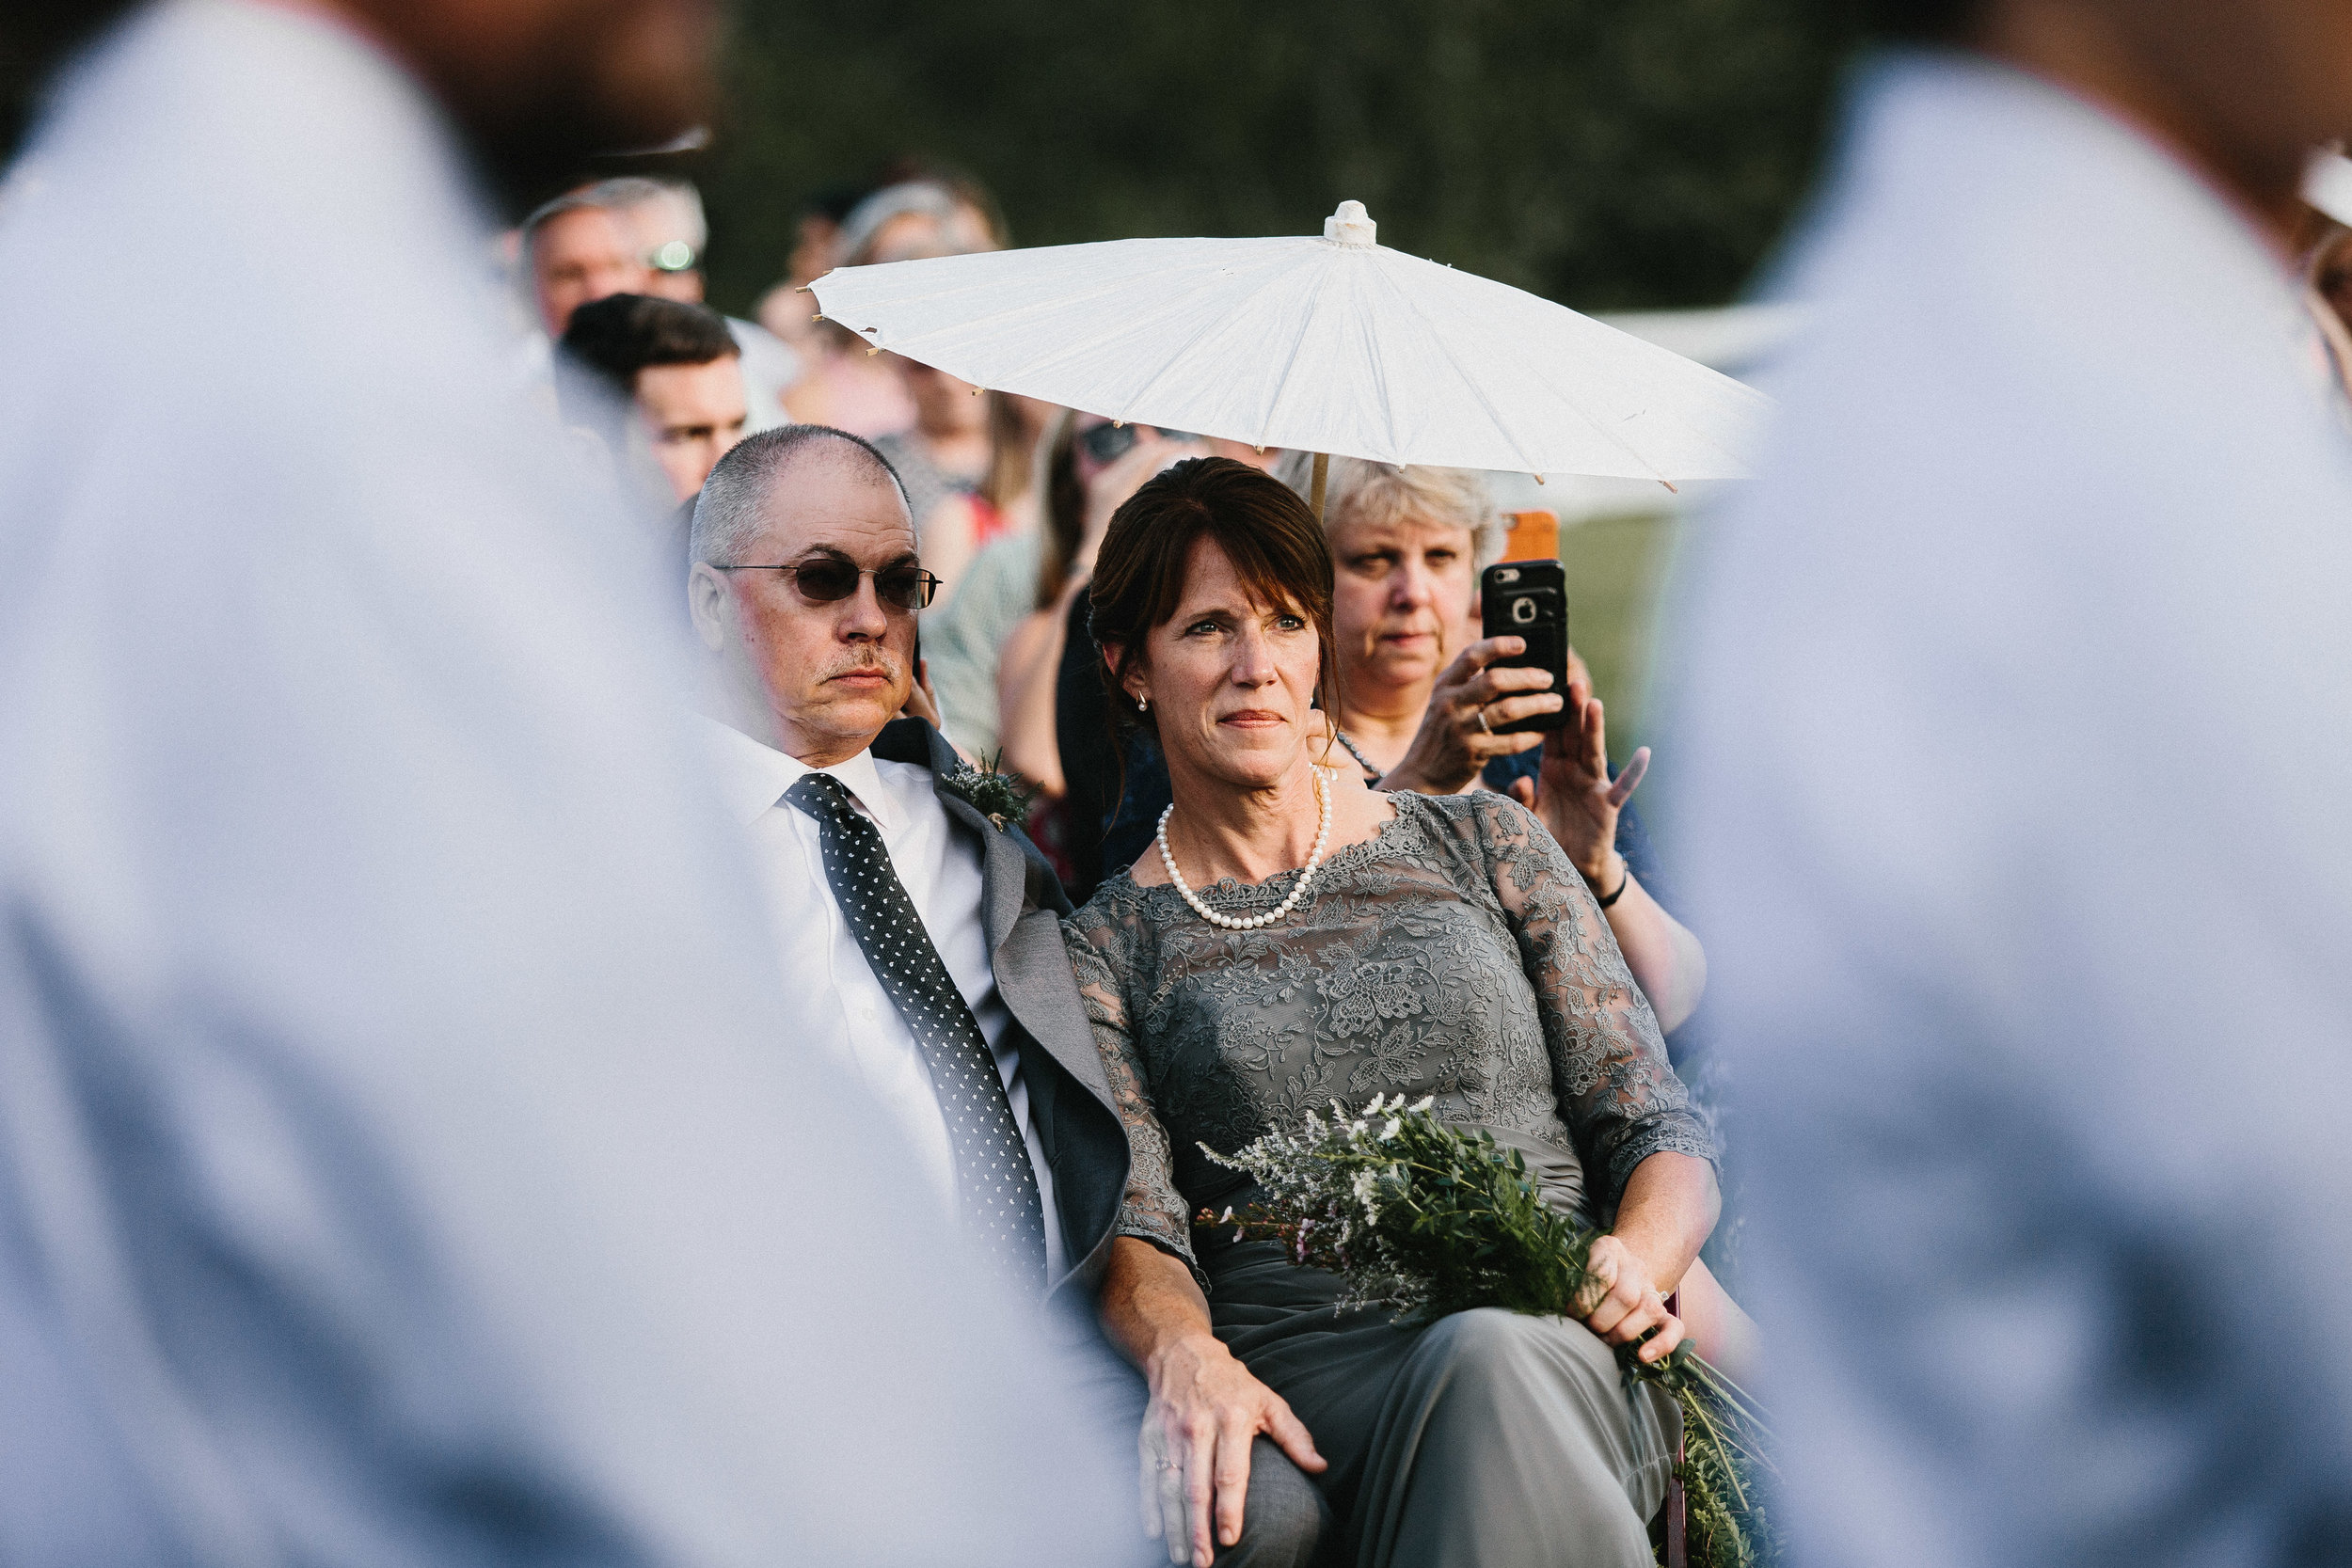 cleveland_georgia_mountain_laurel_farm_natural_classic_timeless_documentary_candid_wedding_emotional_photojournalism_river_west_1682.jpg